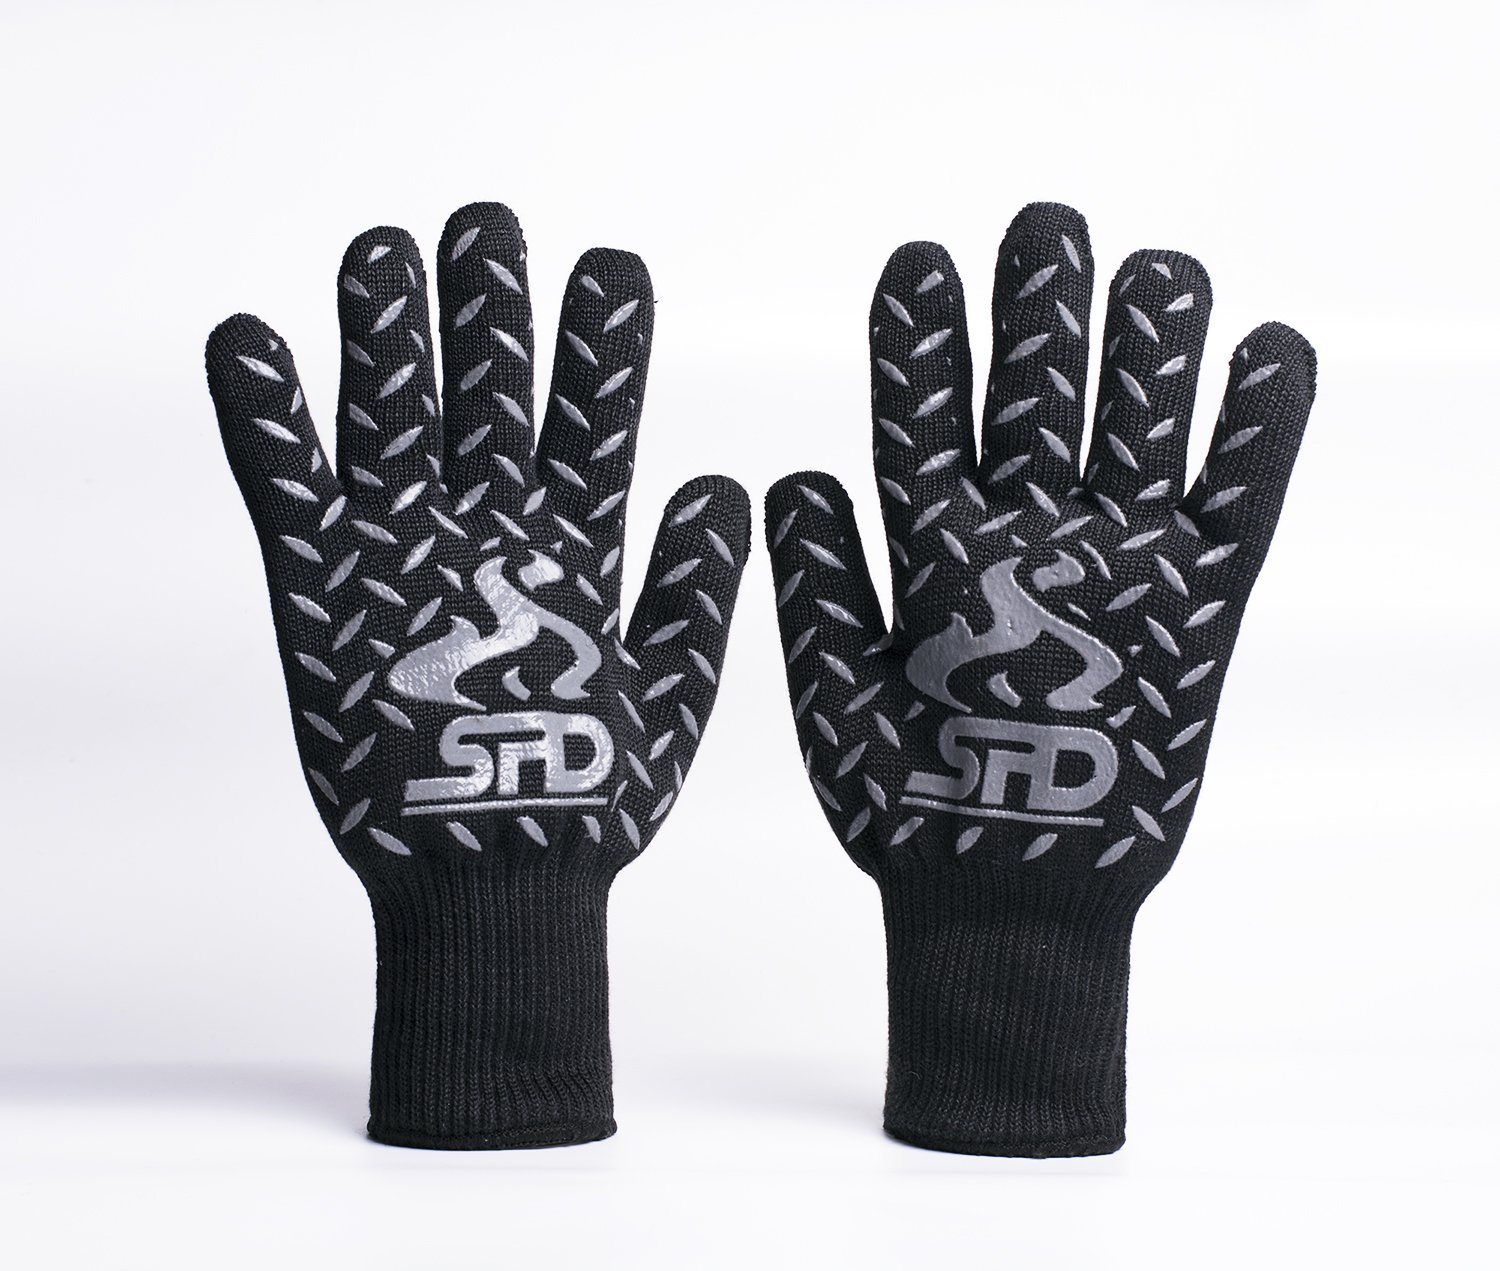 Black oven gloves john lewis - Bbq Grill And Oven Gloves Spd 932 F Extreme Heat Resistant Gloves Cooking Gloves And Bbq Grill Mitts With Lining High Temperature Woodburner Oven Mitts